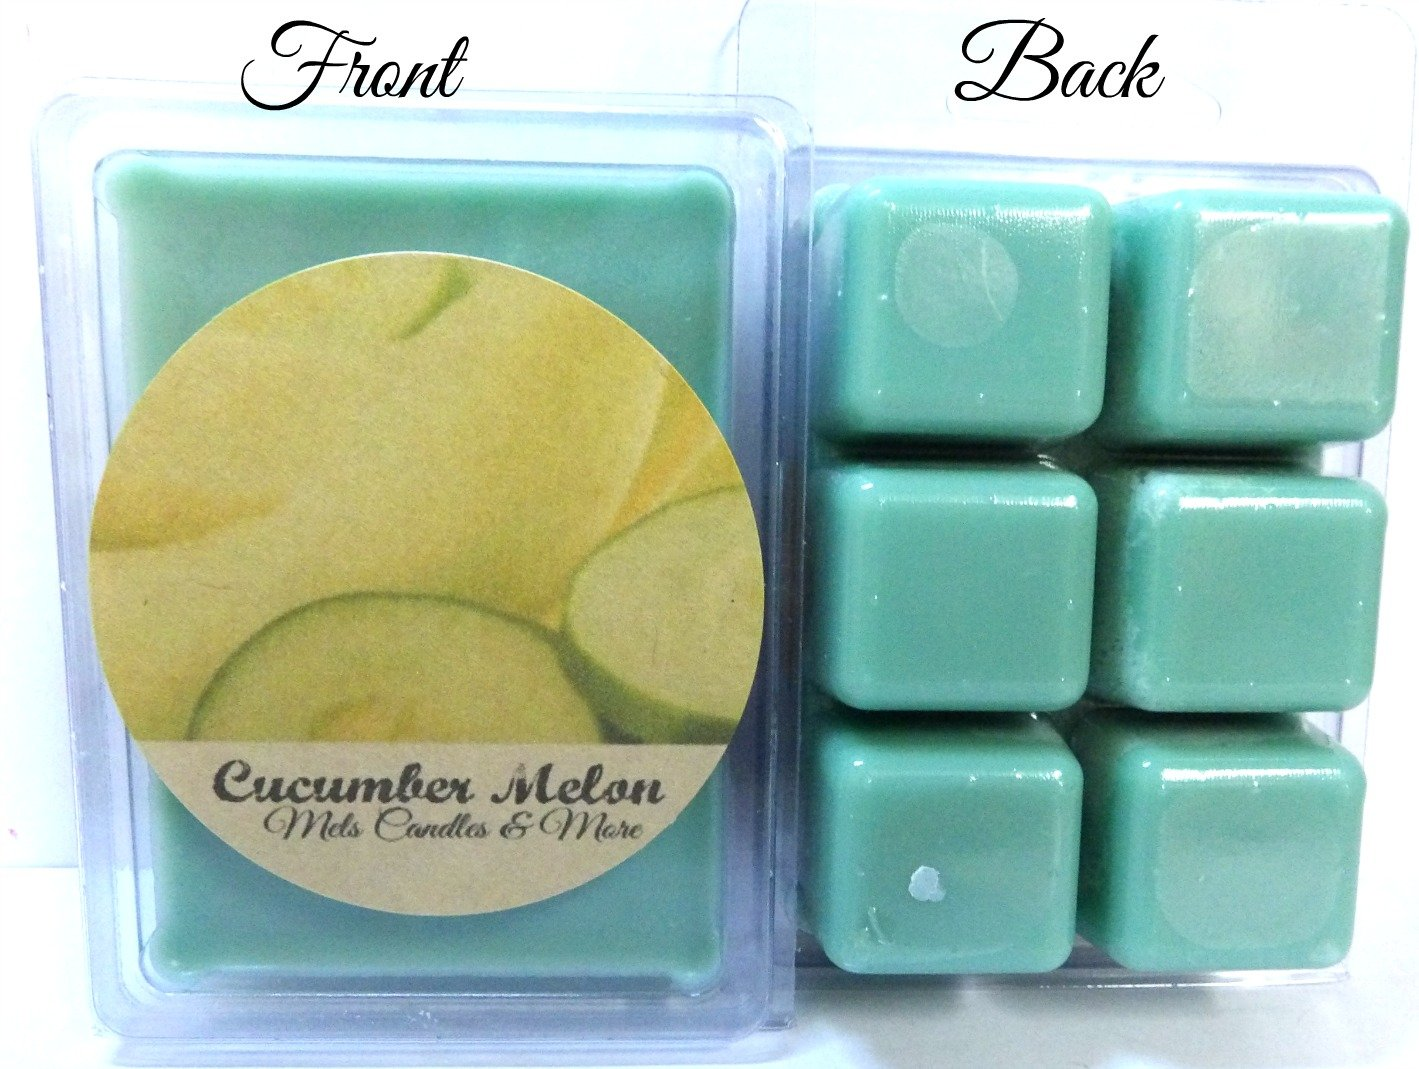 Scent Brick Wickless Candle Maple Bacon 3.2 Ounce Pack of Soy Wax Tarts